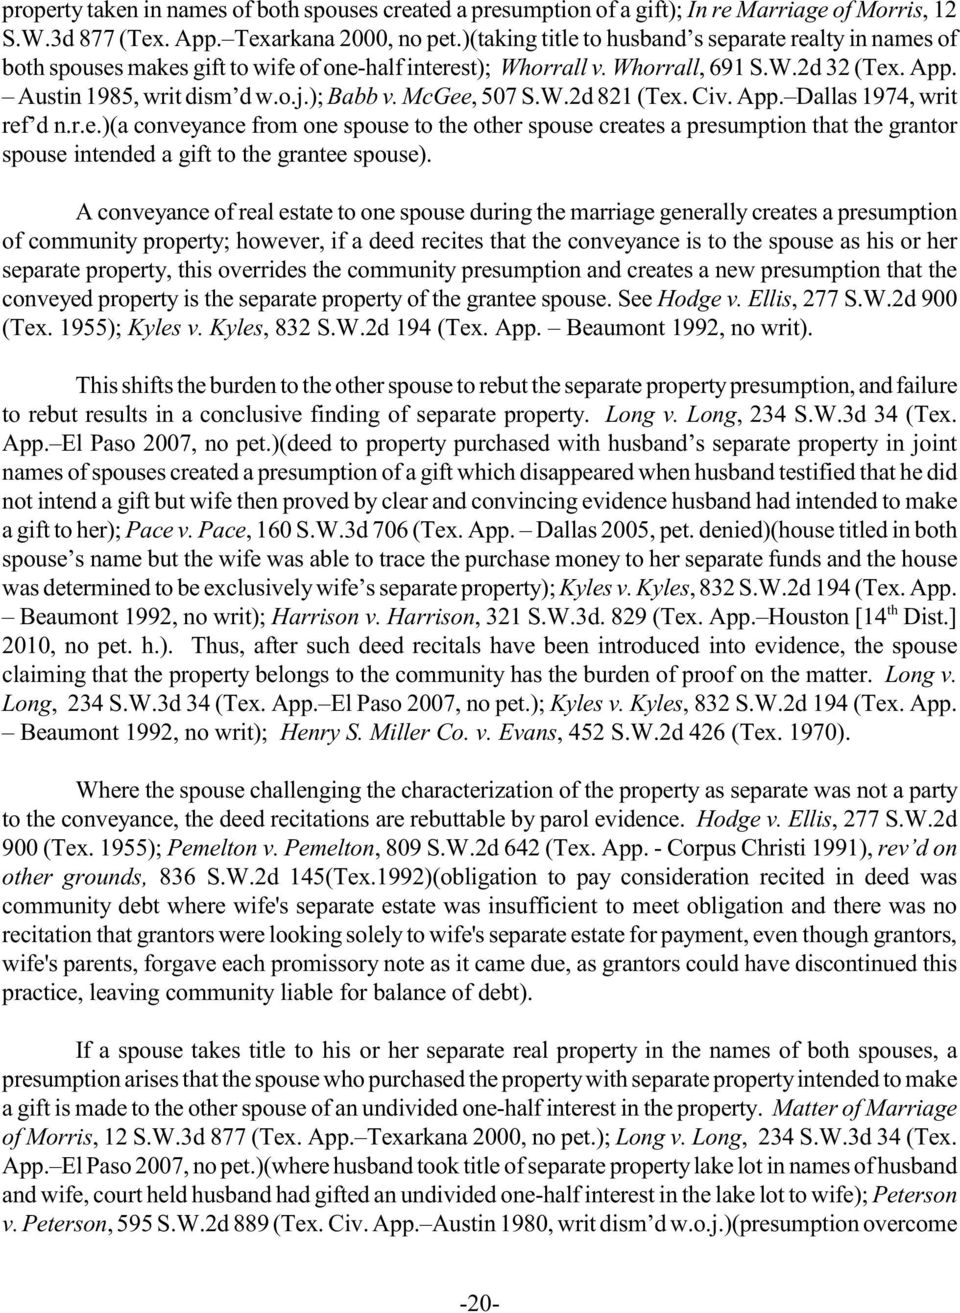 McGee, 507 S.W.2d 821 (Tex. Civ. App. Dallas 1974, writ ref d n.r.e.)(a conveyance from one spouse to e oer spouse creates a presumption at e grantor spouse intended a gift to e grantee spouse).